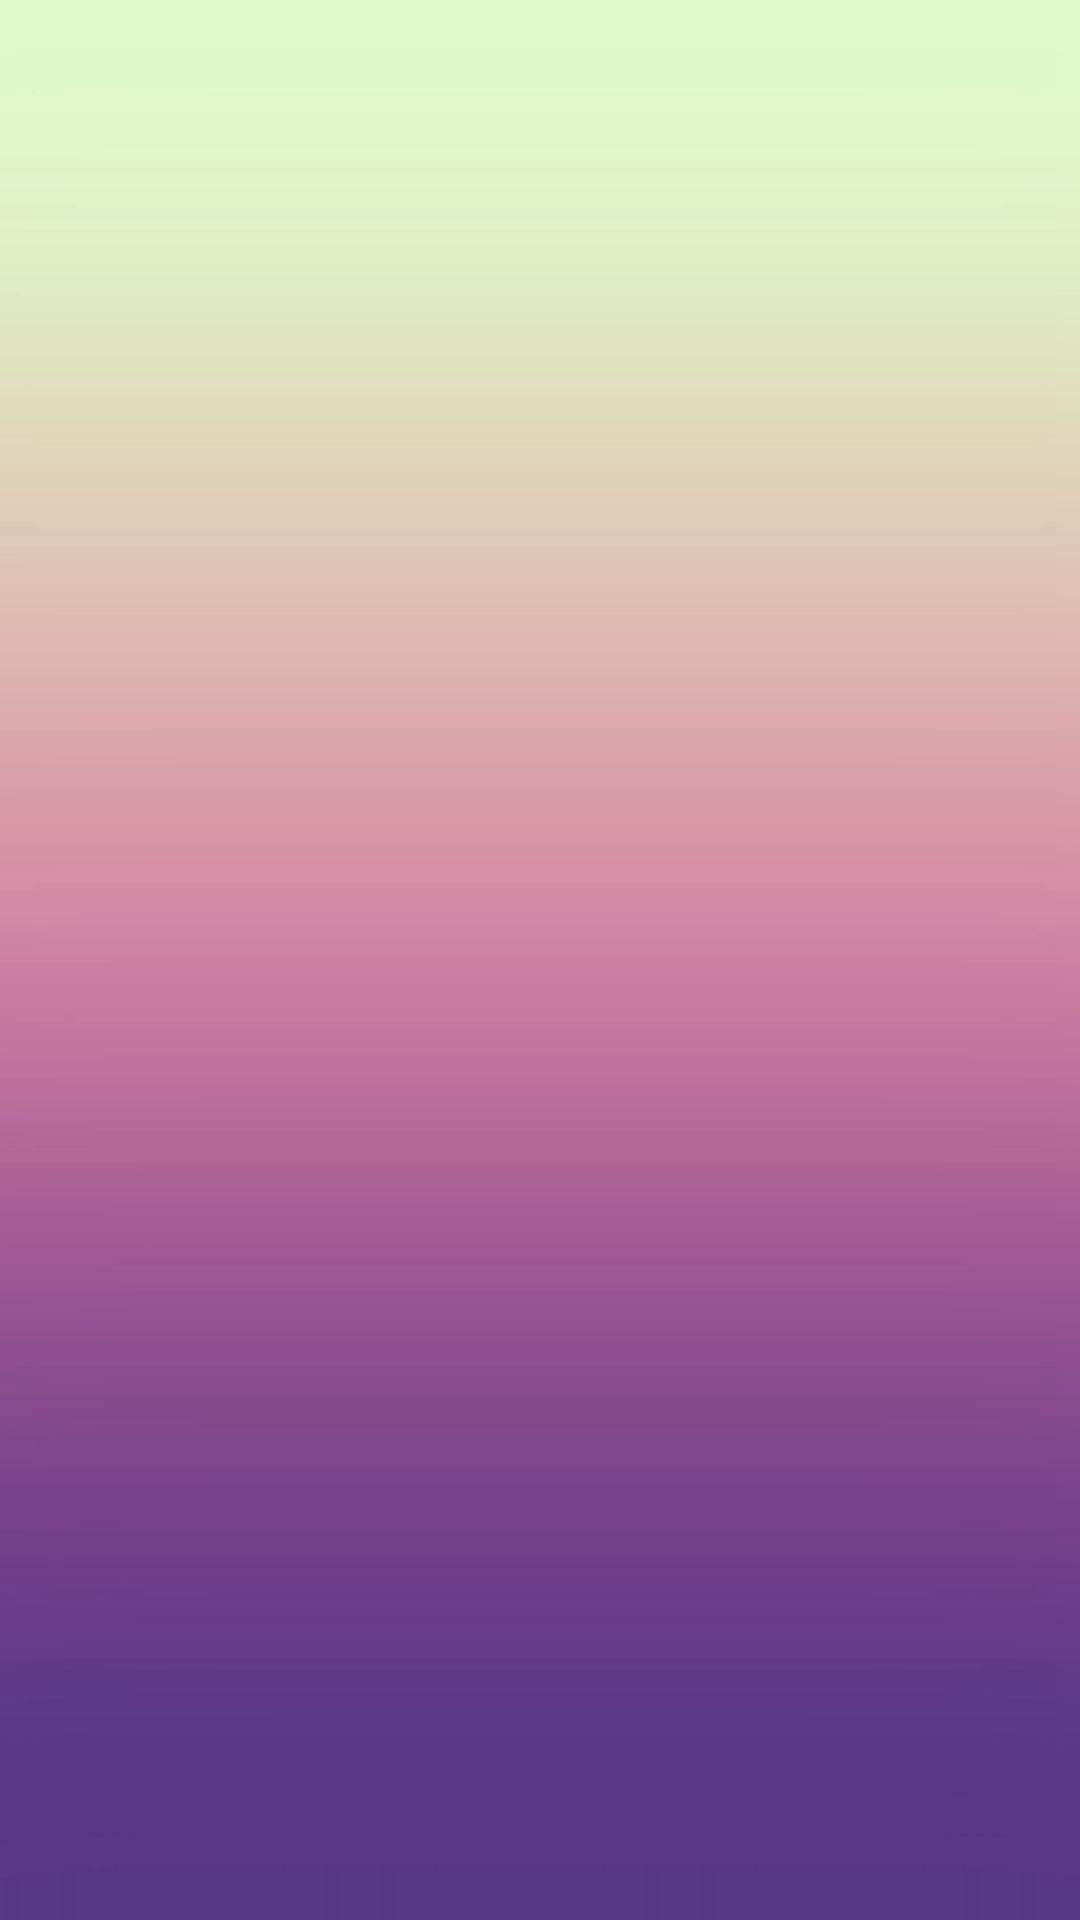 Wallpaper iphone violet - Purple Soft Red Gradation Blur Iphone 6 Wallpaper